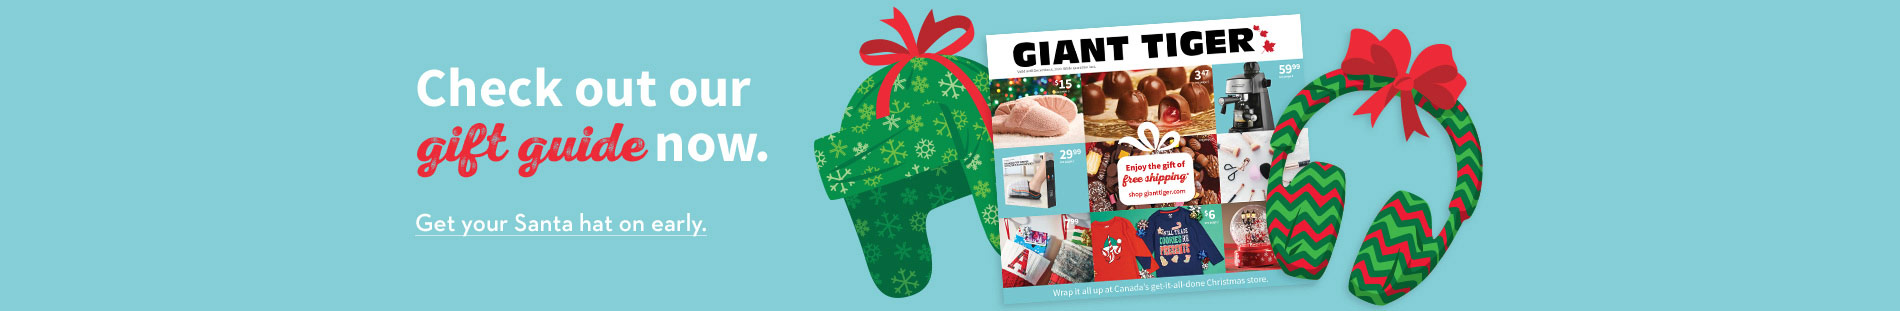 Check out our gift guide now